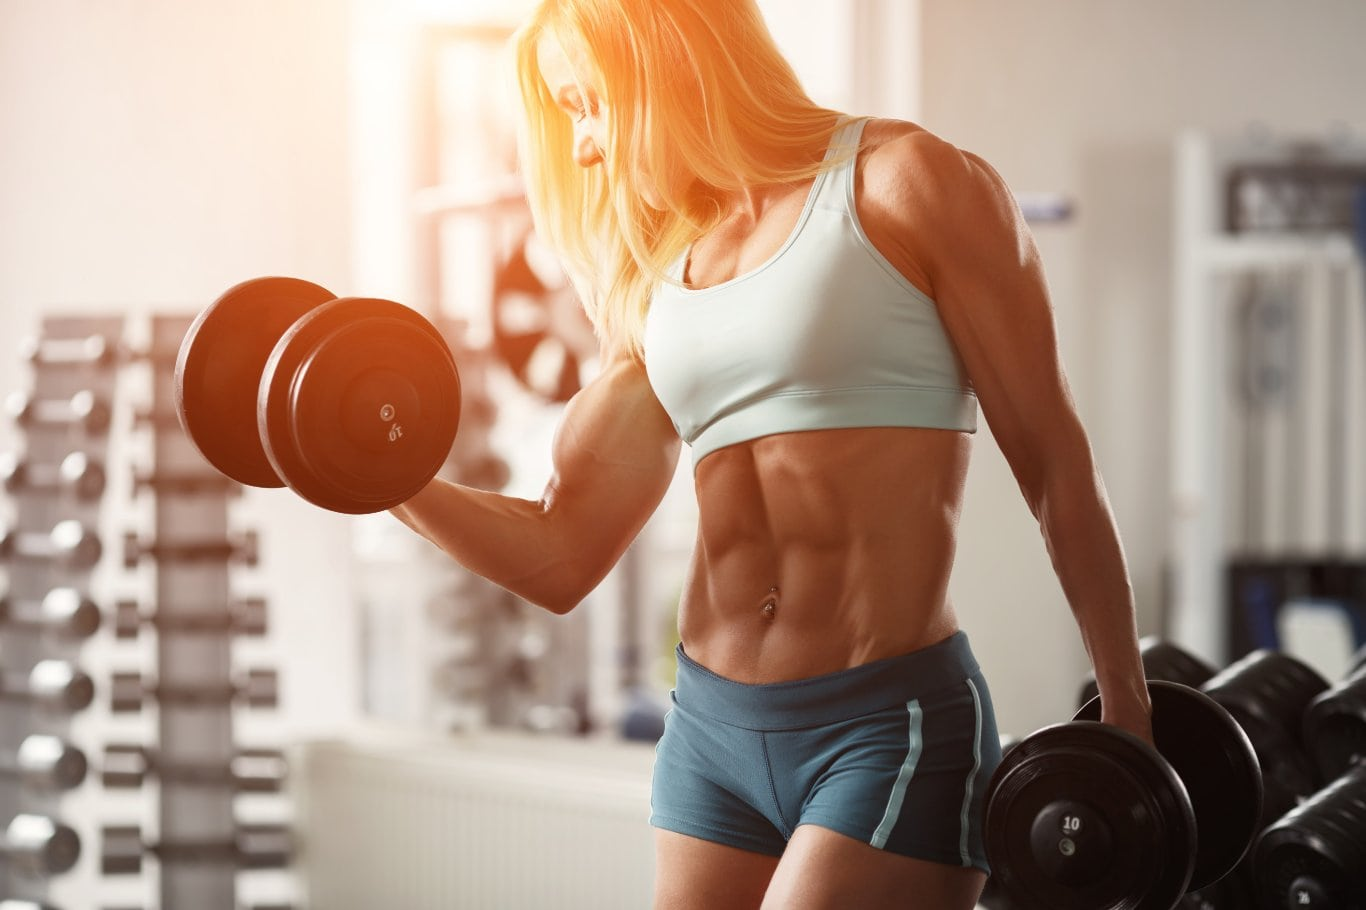 To learn about the best breast implant placement for athletic and active women, call Houston plastic surgeon Dr. Michael Eisemann at (713) 766-0071 today